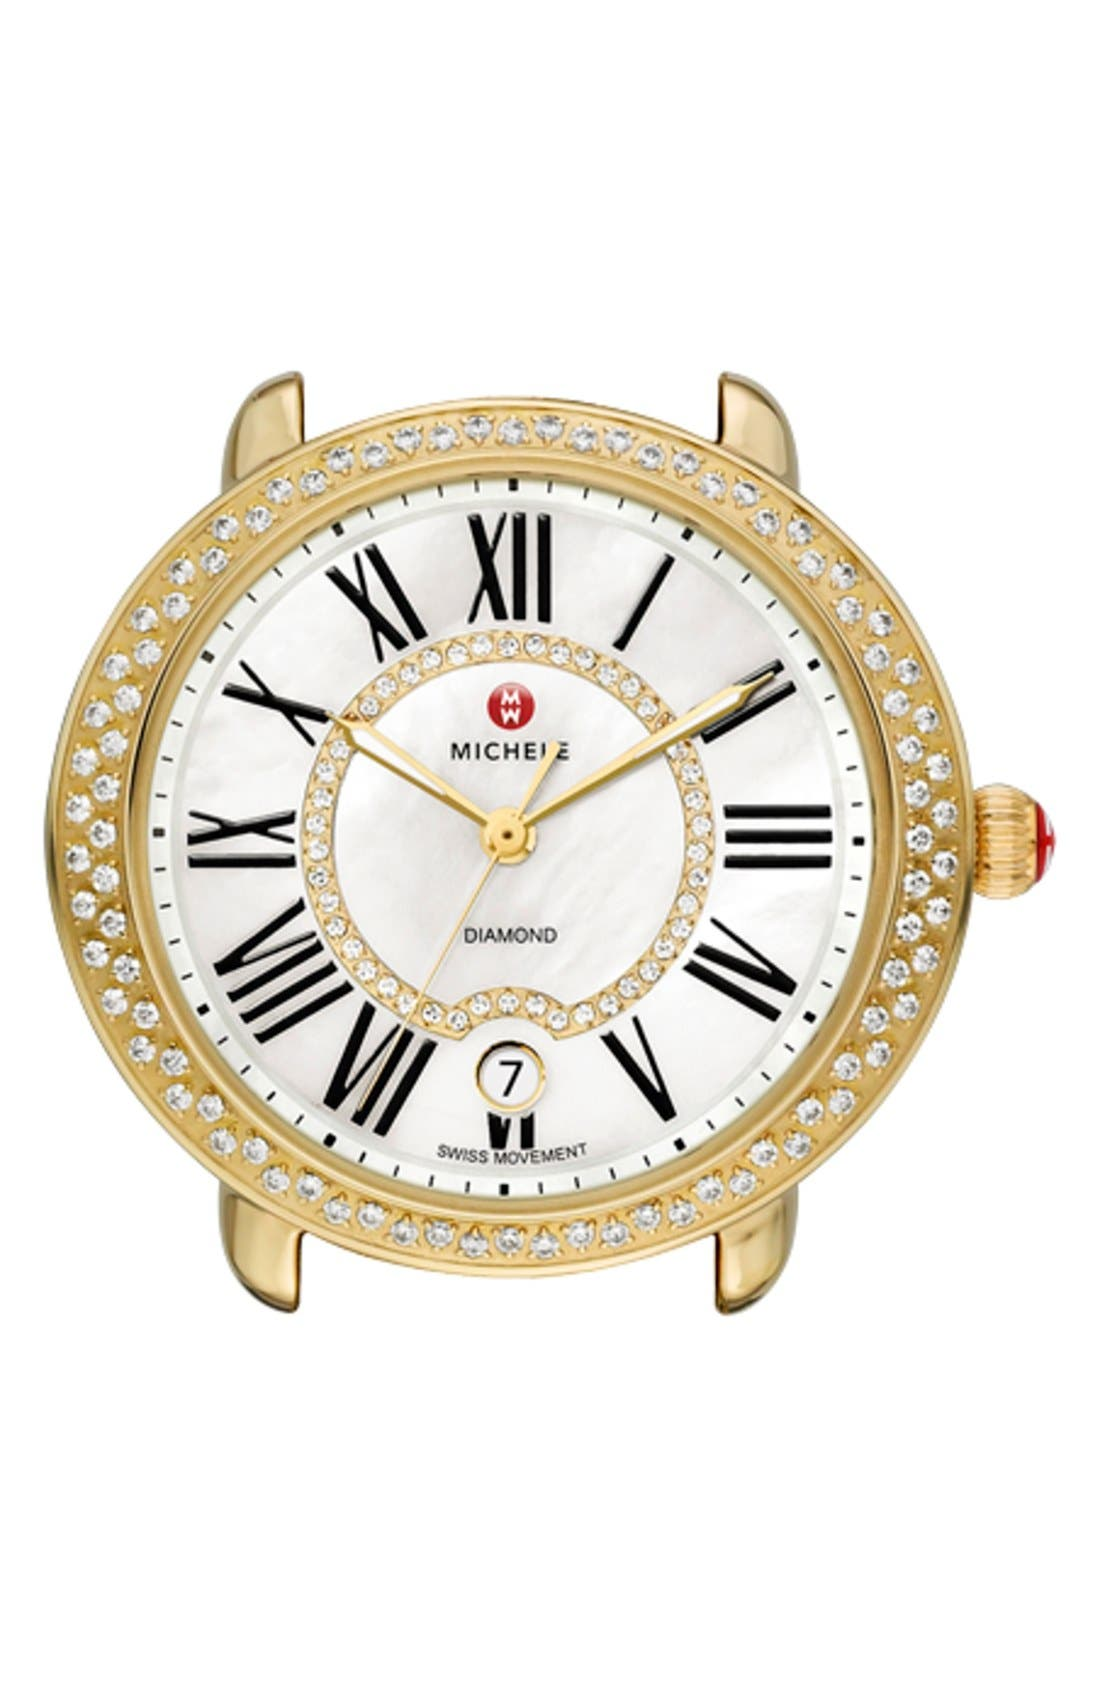 Serein 16 Diamond Gold Plated Watch Case, 34mm x 36mm,                         Main,                         color, GOLD